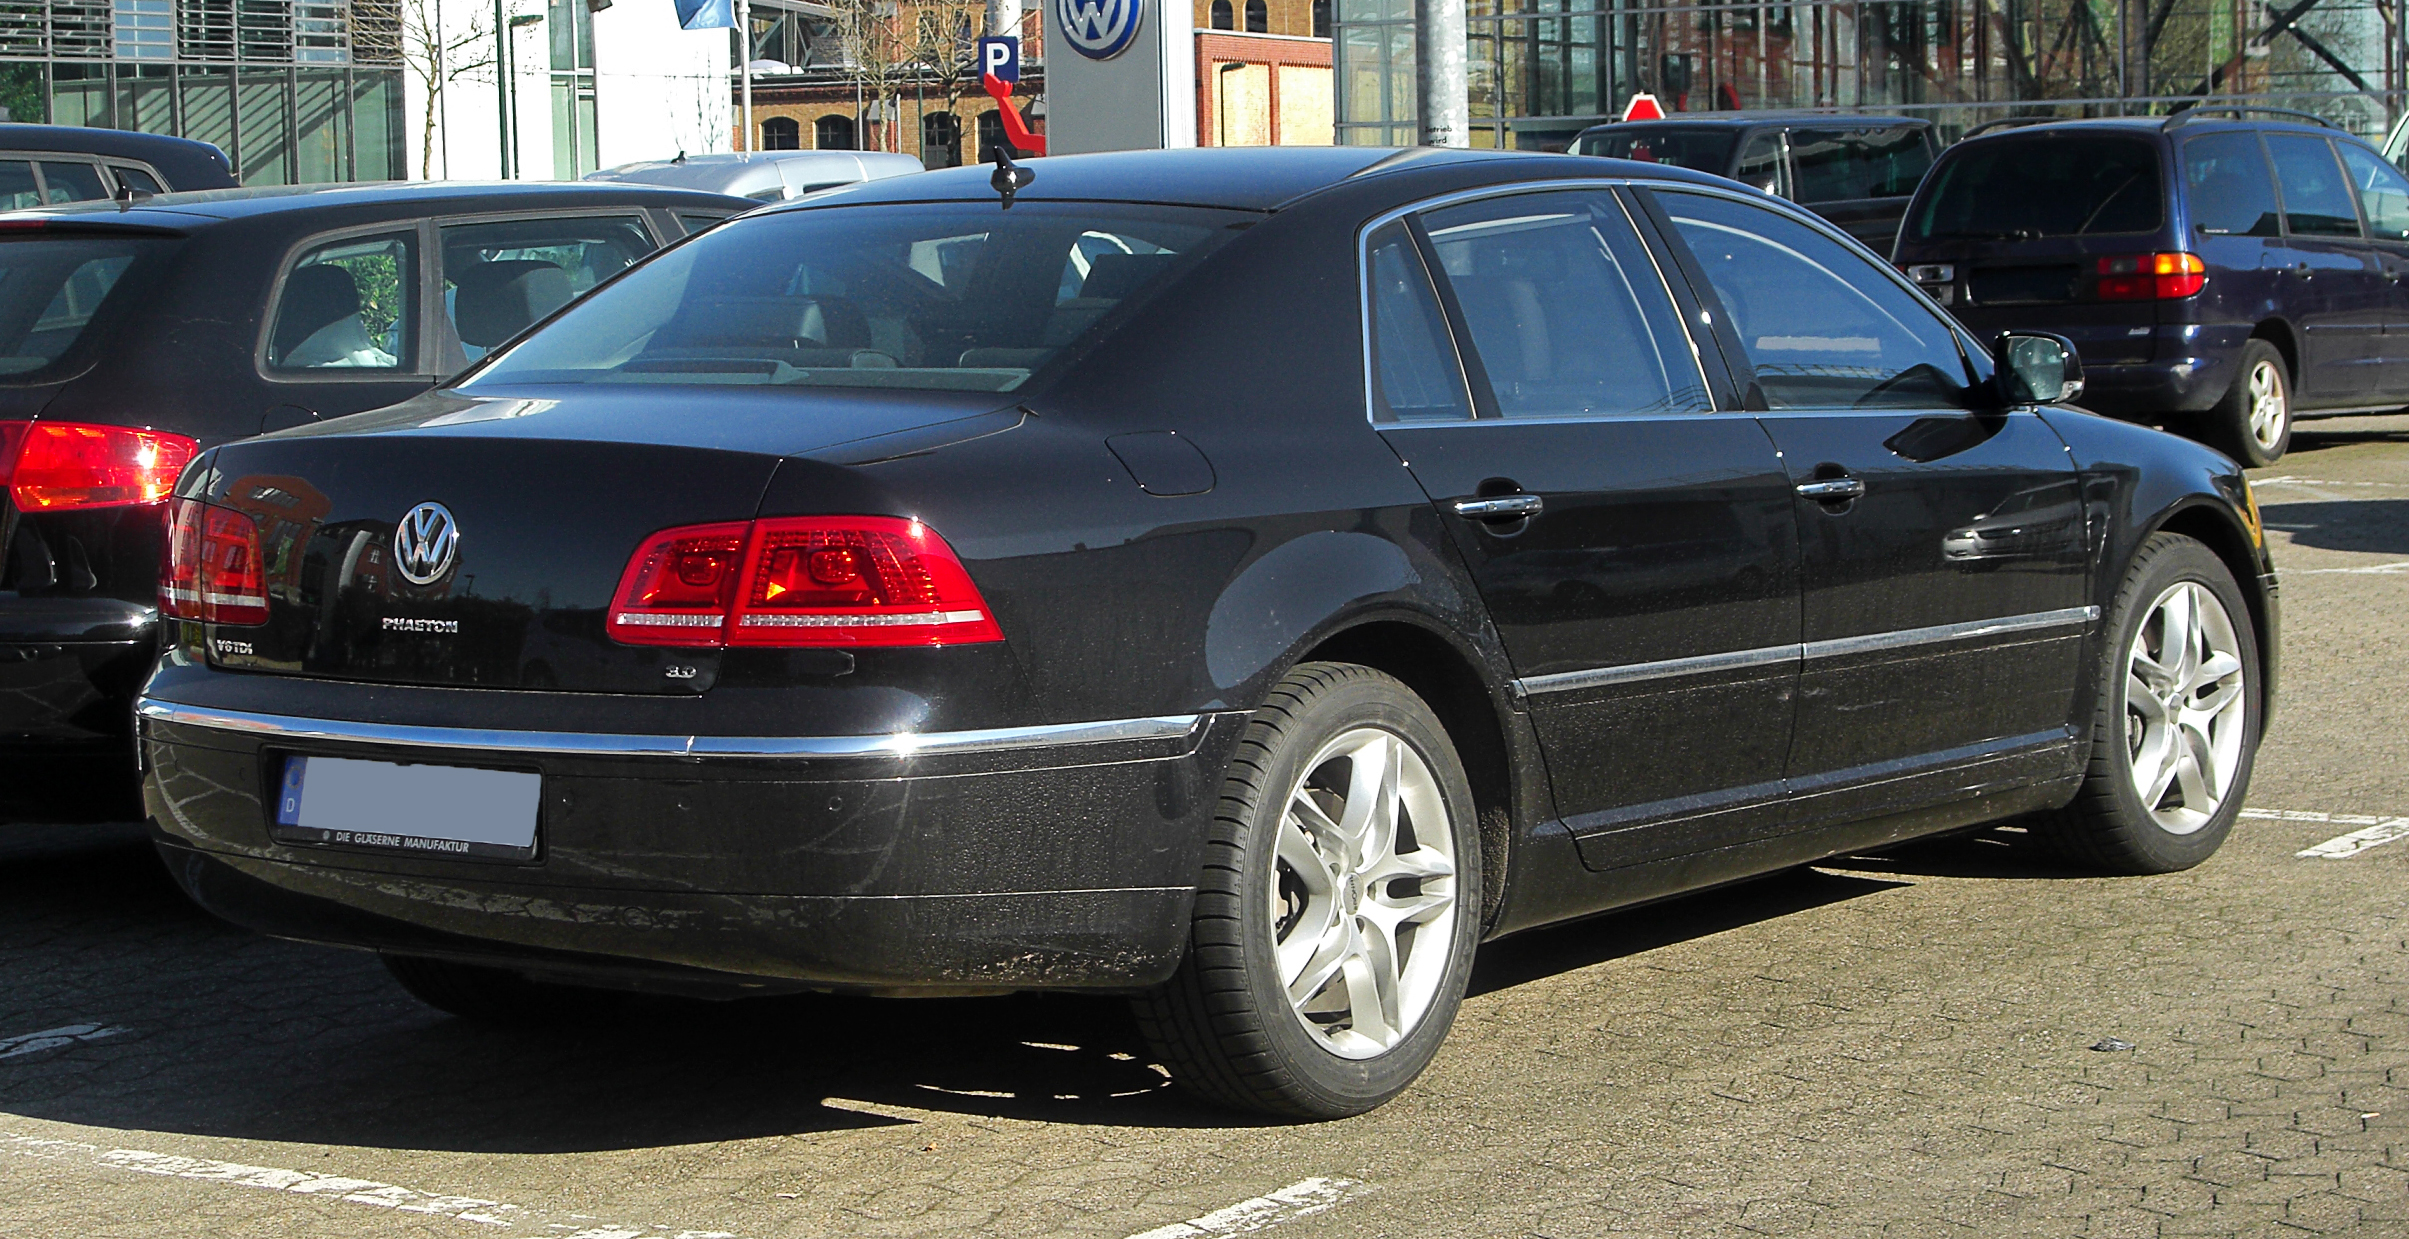 Volkswagen Phaeton 3.0 2011 photo - 5